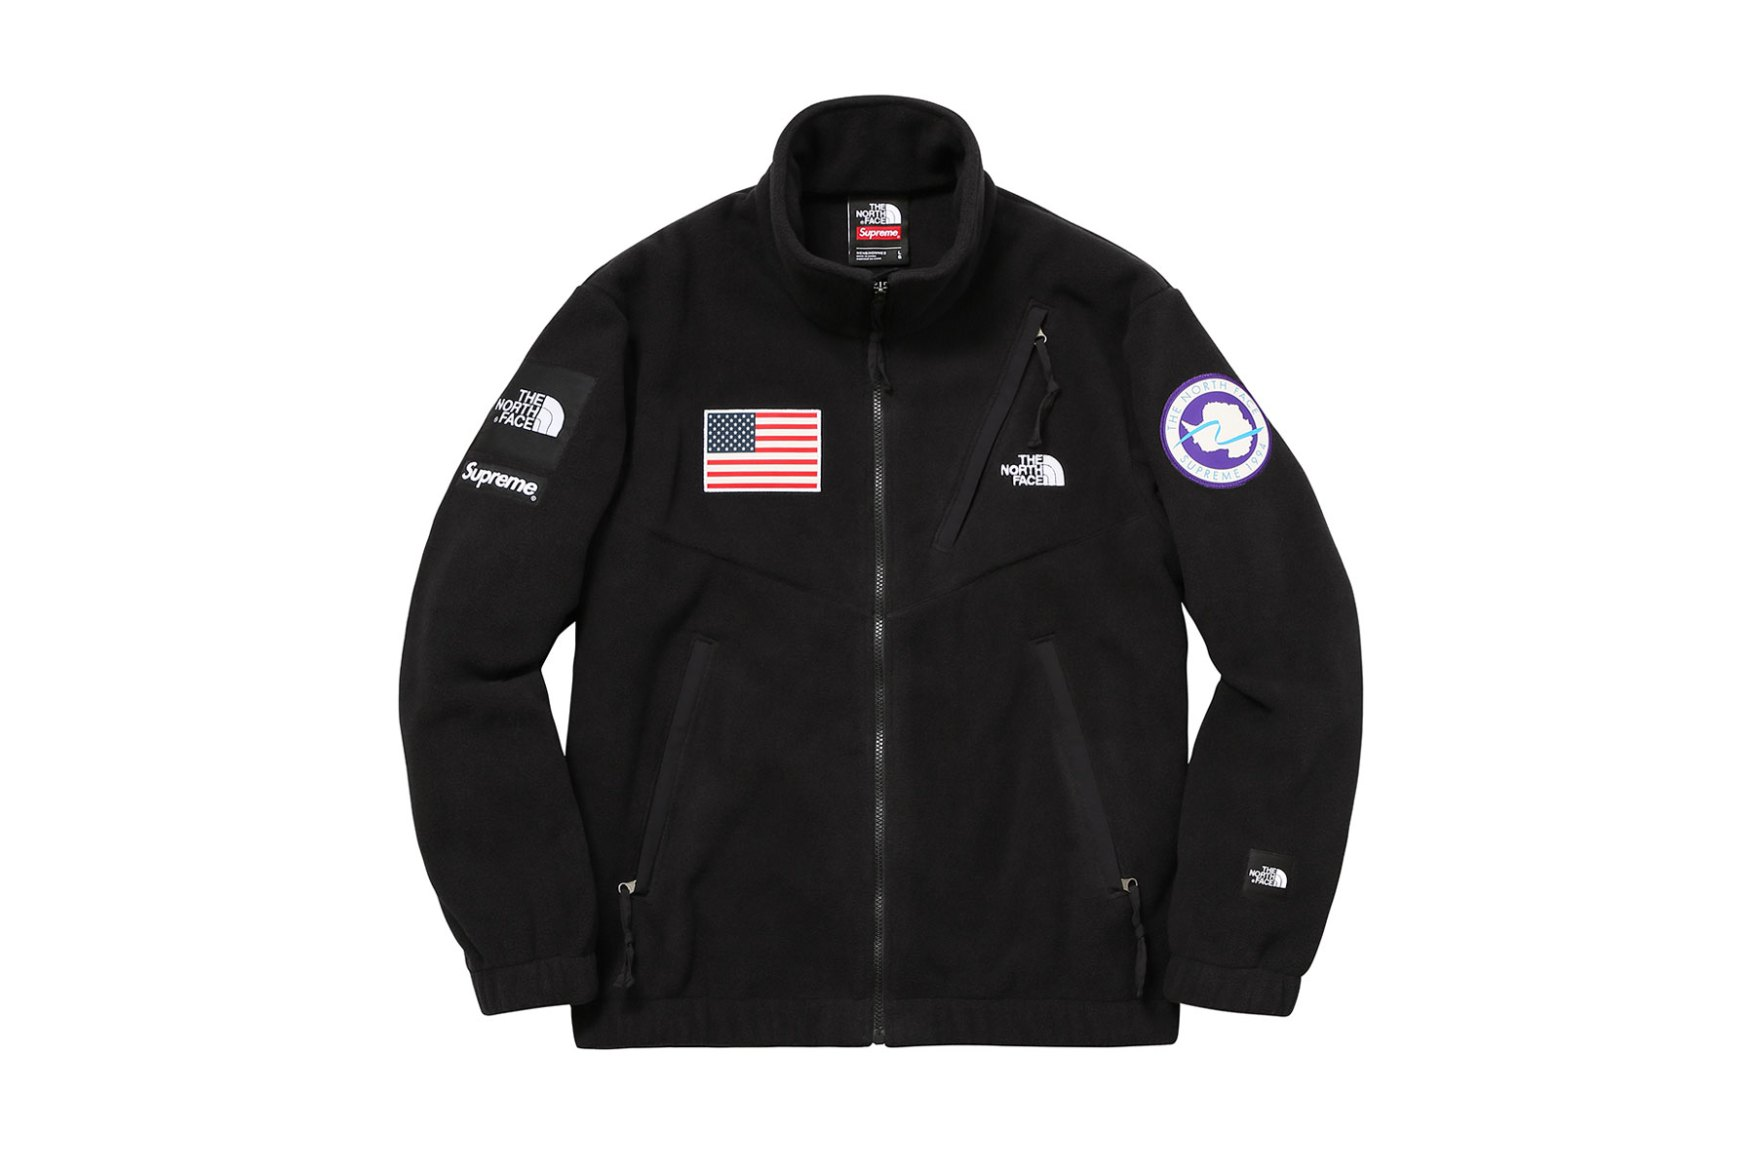 supreme-the-north-face-2017-spring-summer-black-polartec-fleece-jacket-27